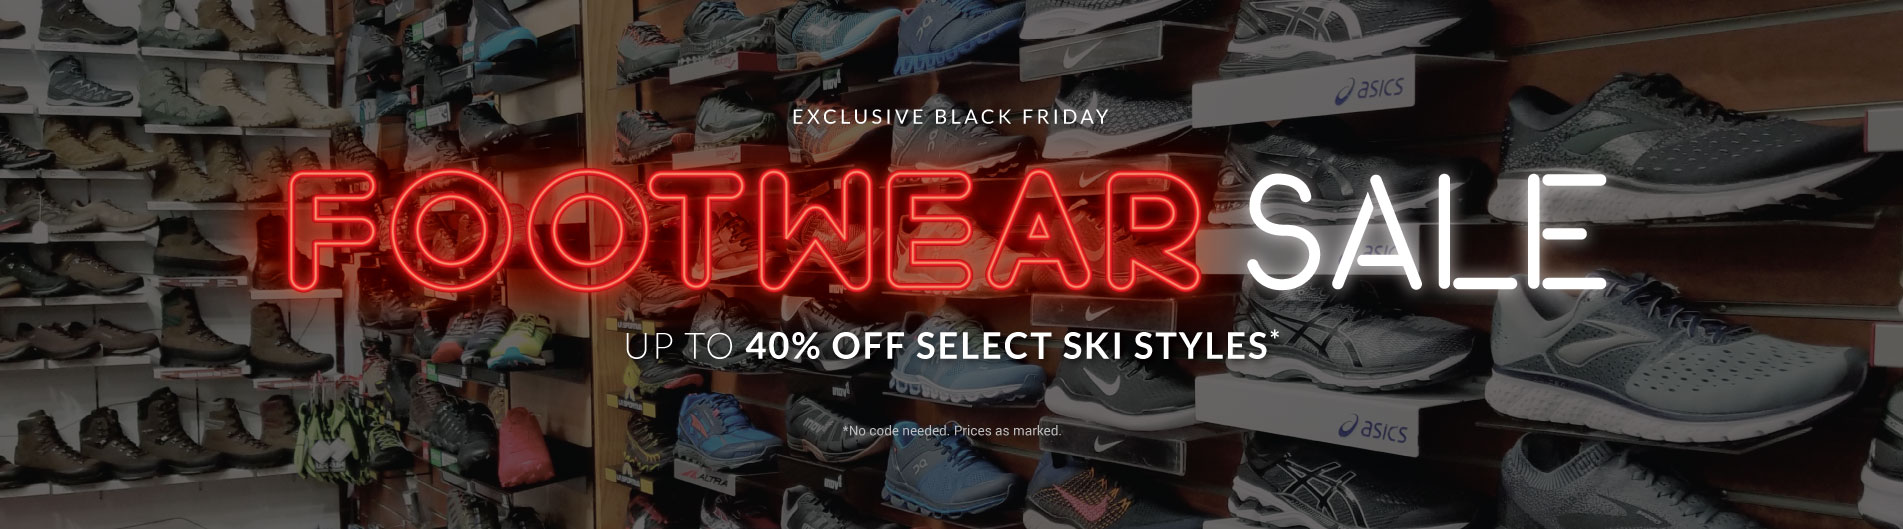 Save up to 40% off top brands when you shop our Black Friday Preview Sale